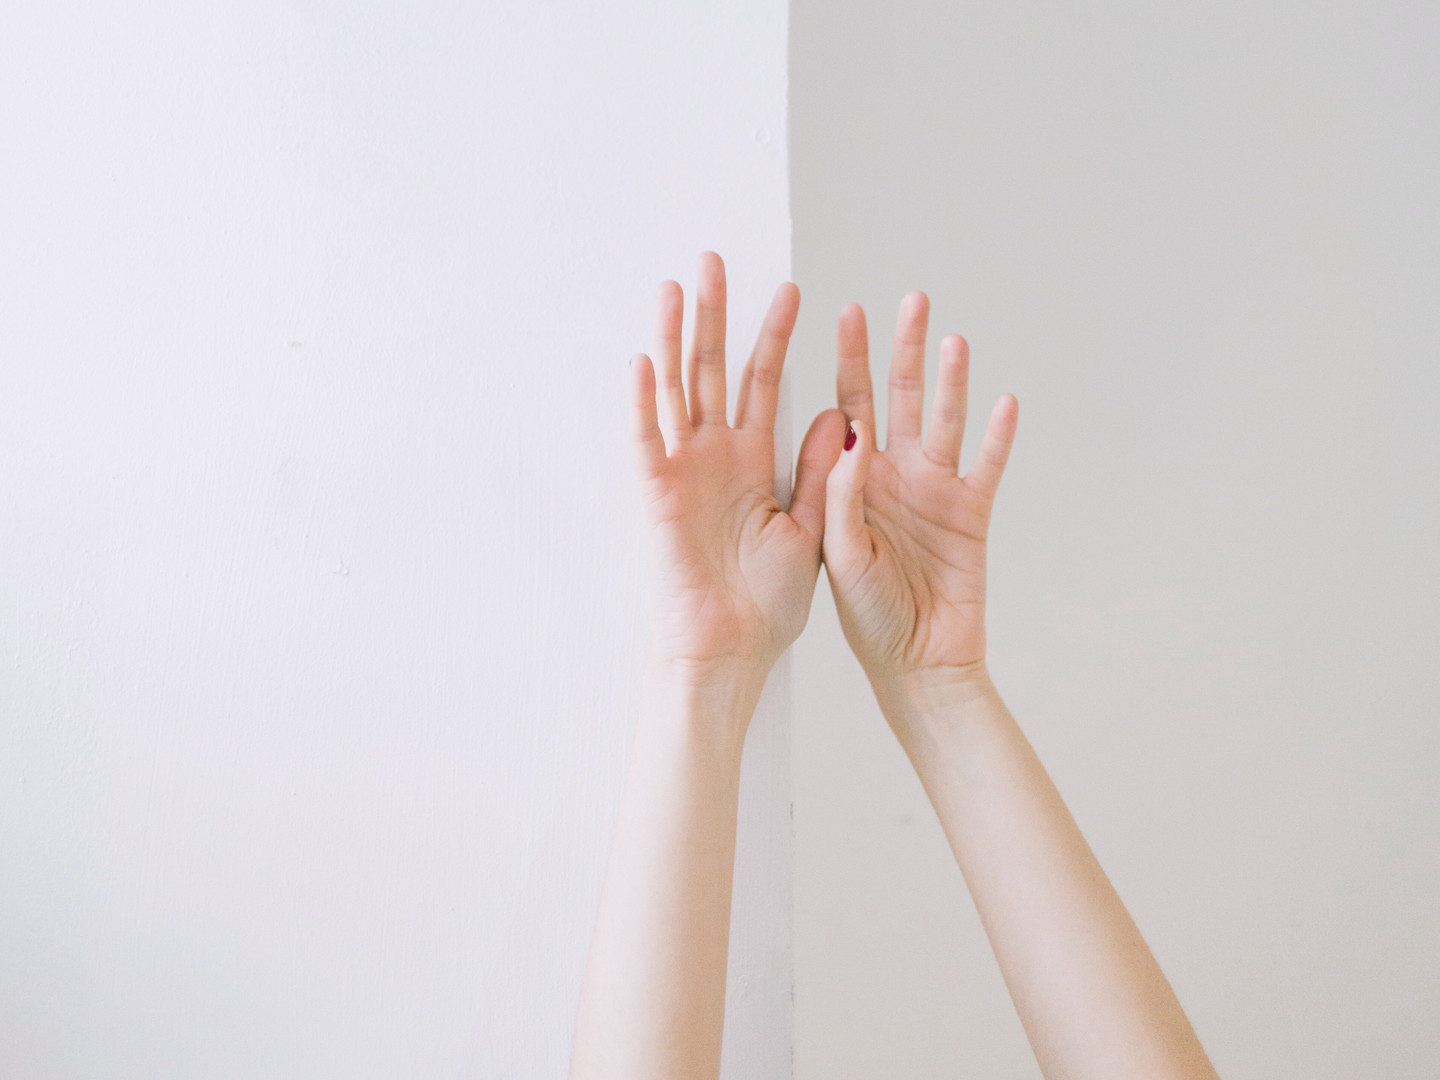 person-two-hand-leaning-on-wall-709801.j